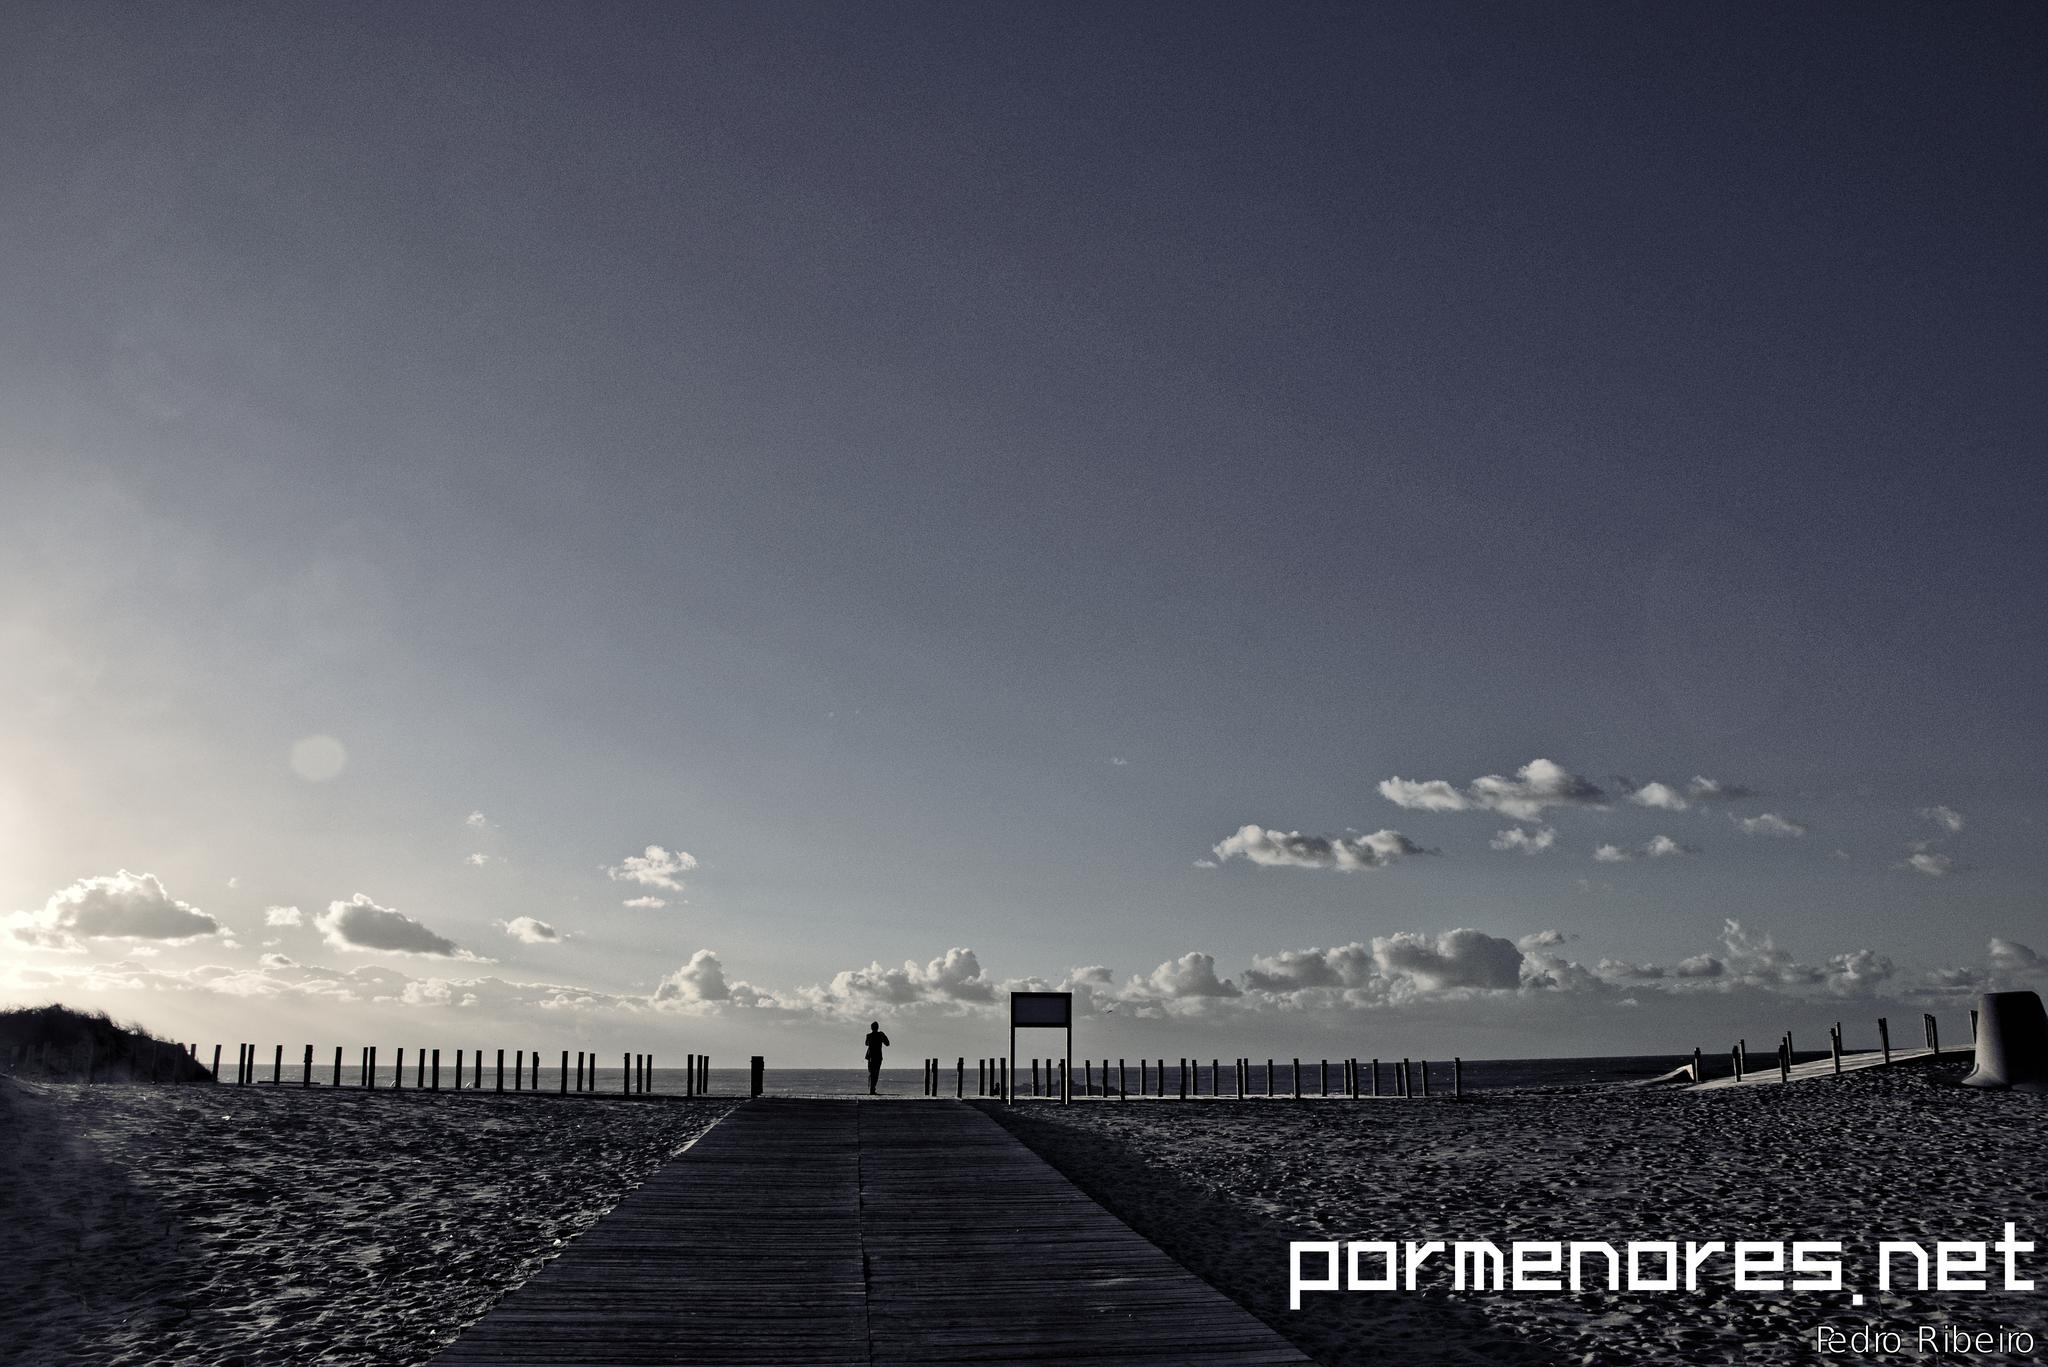 Beach in Winter by pormenores_net